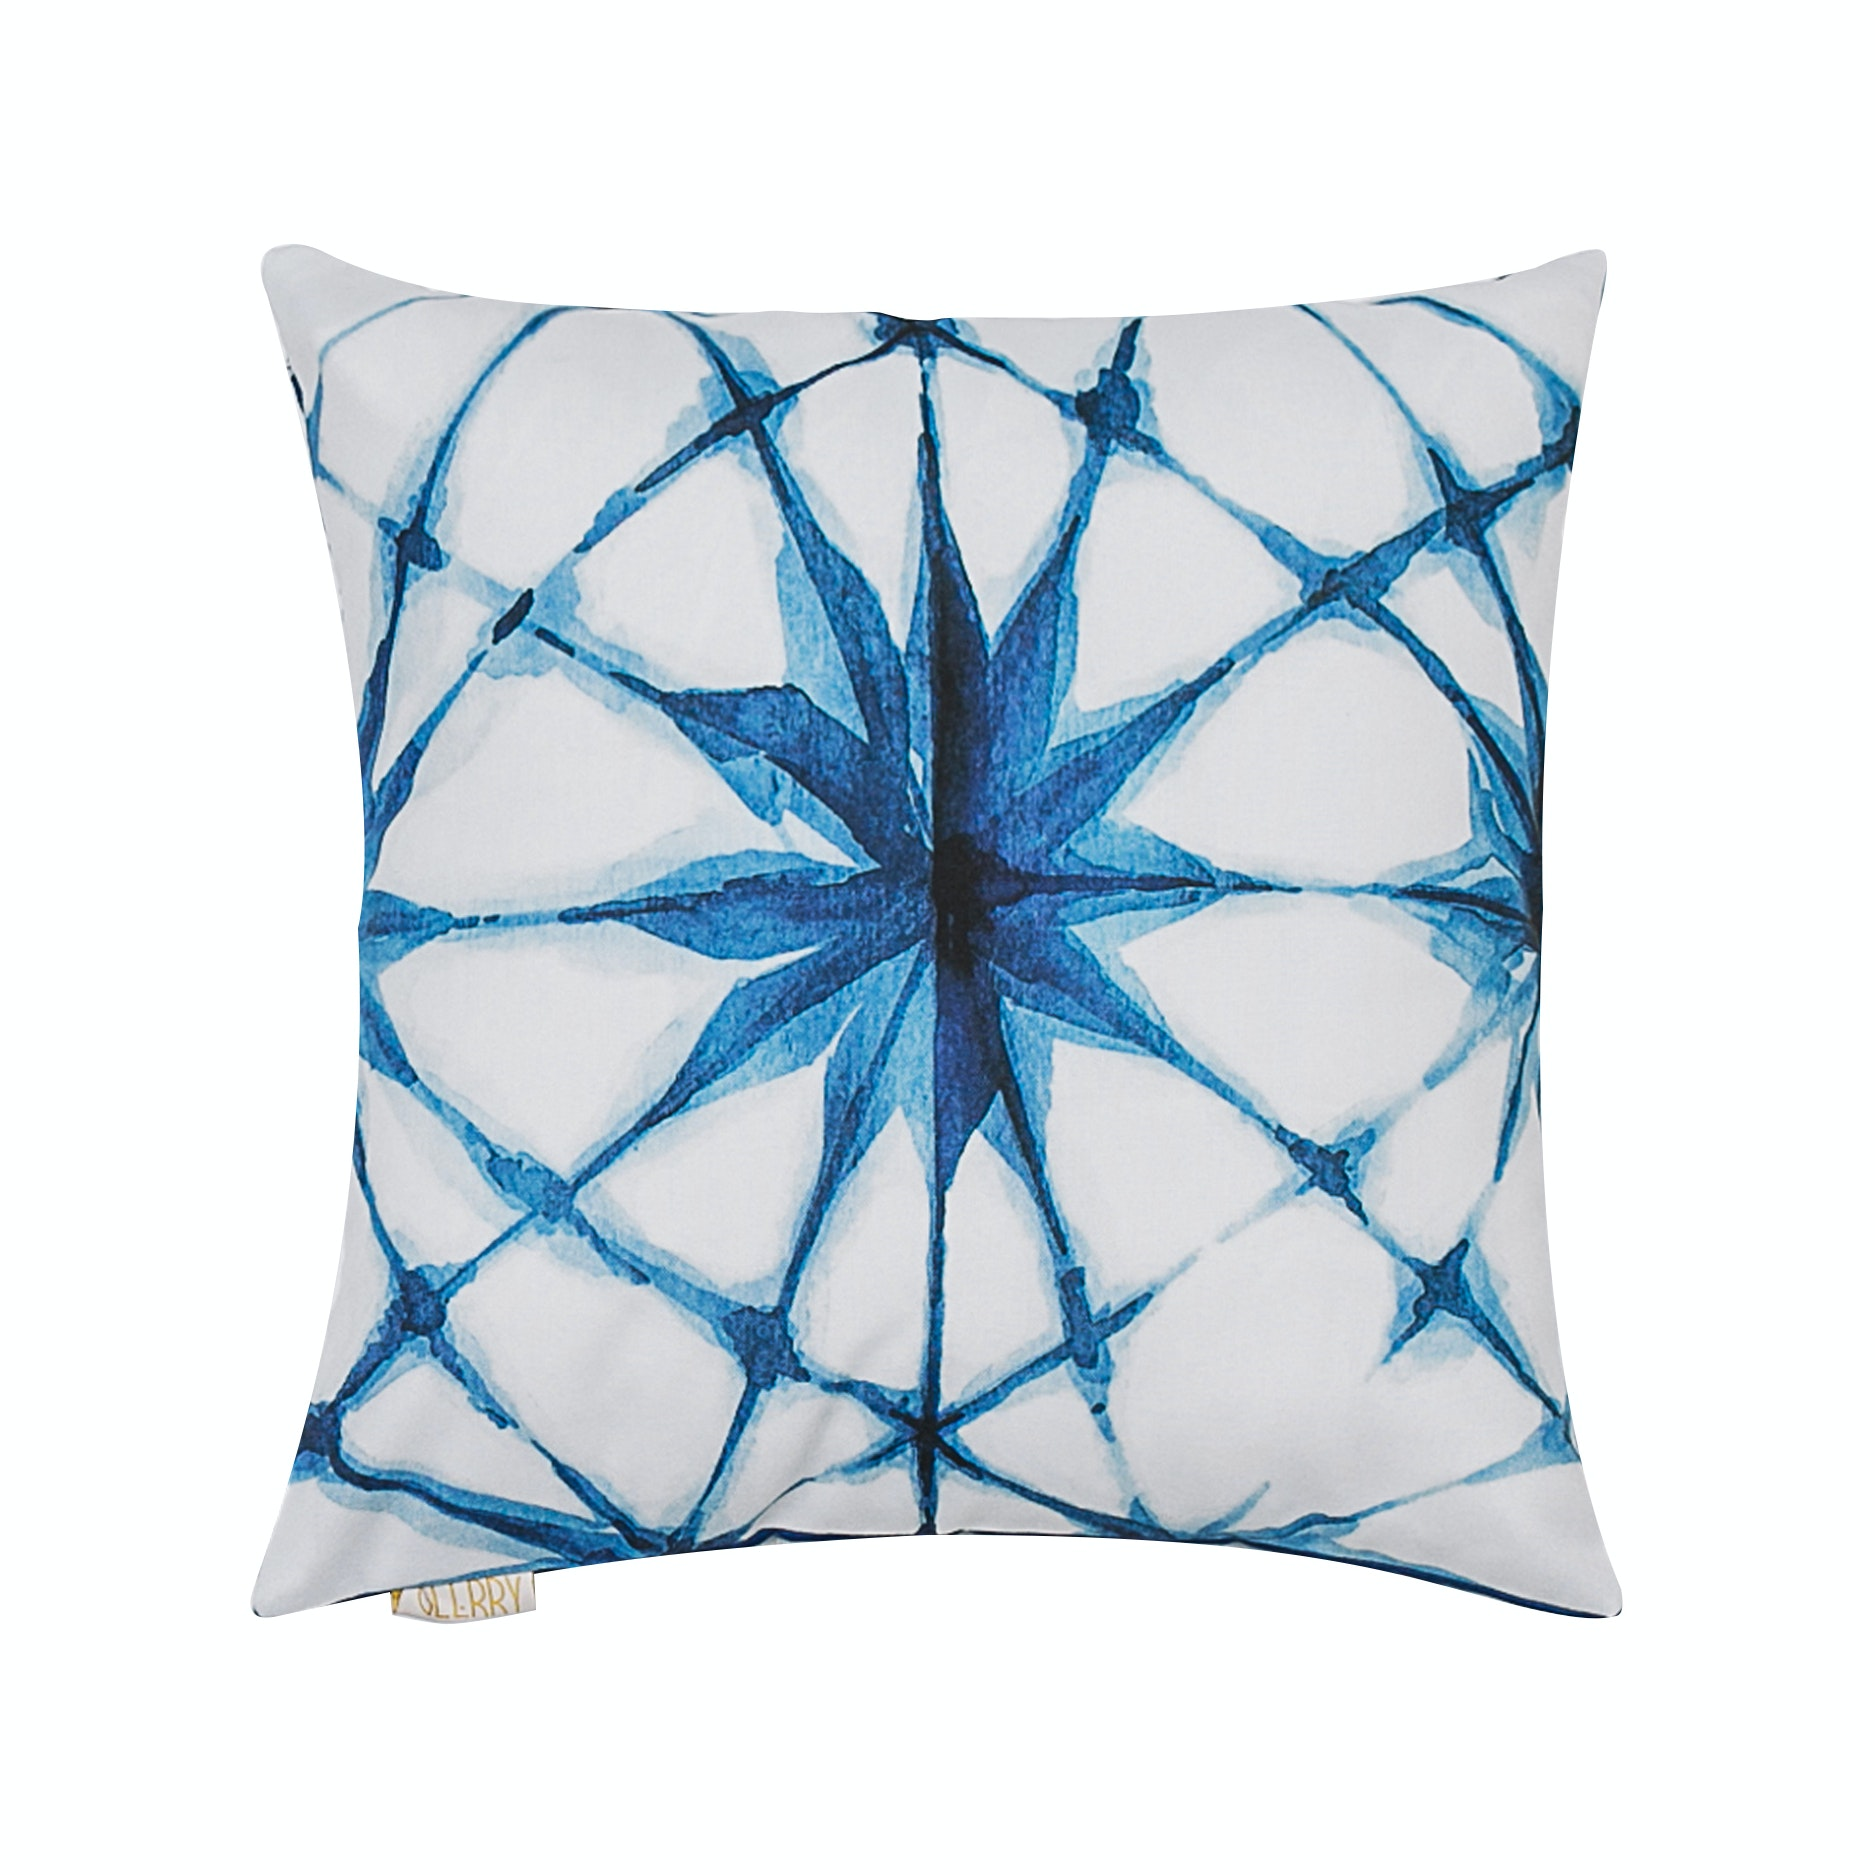 Glerry Home Decor Blue Star Cushion+Insert 40x40cm